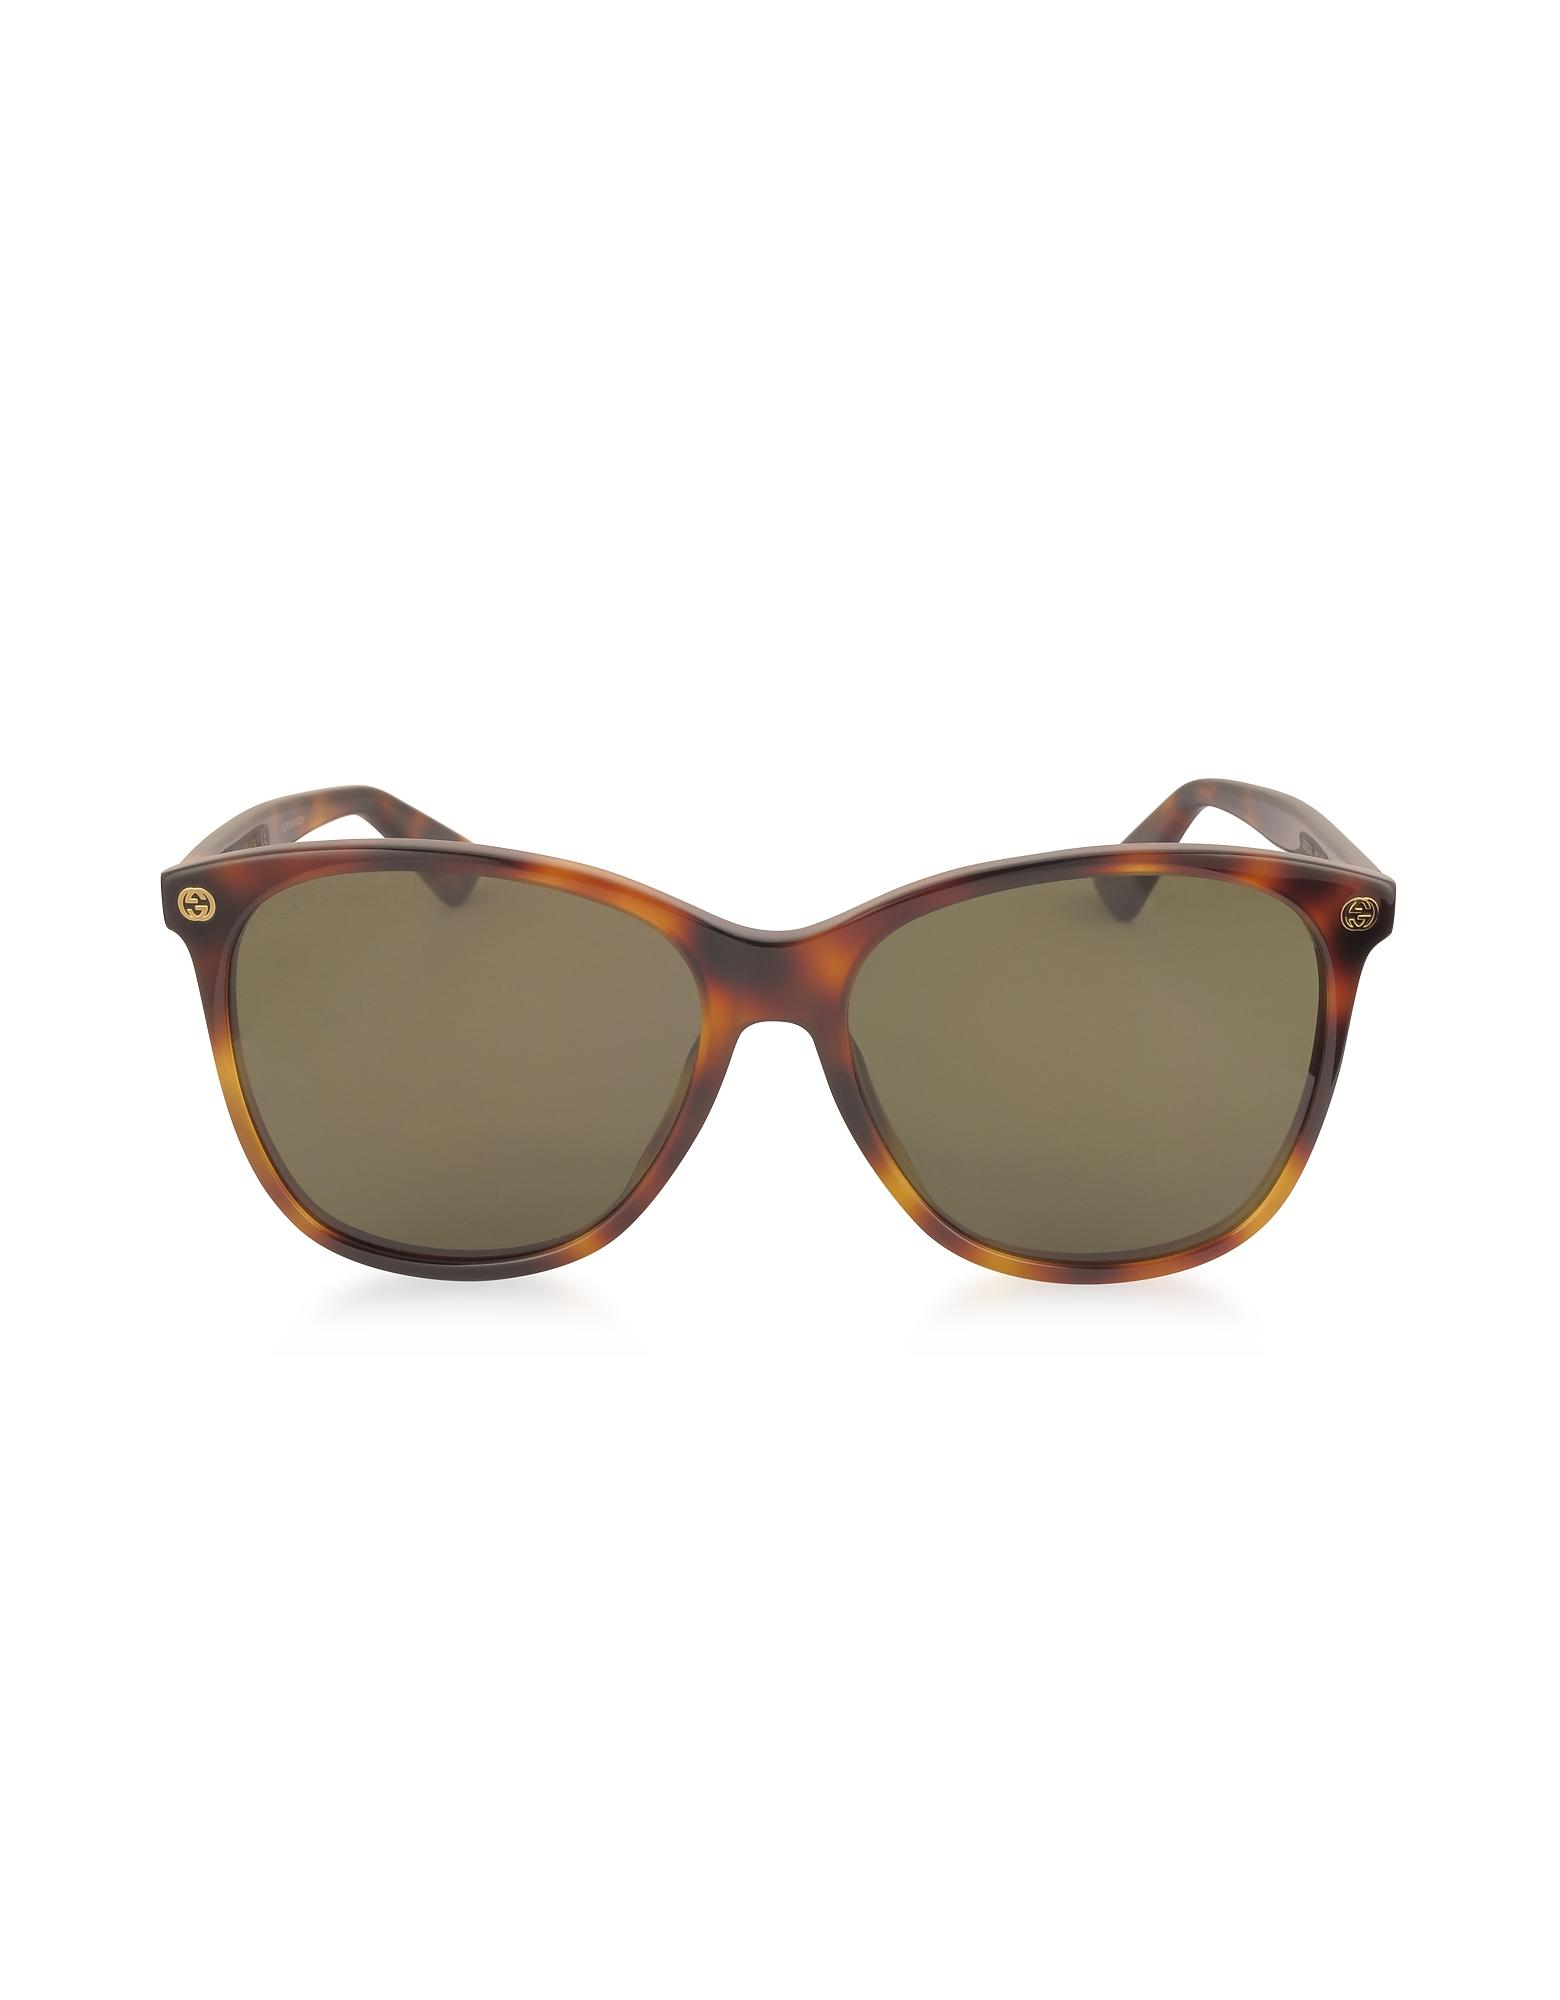 ae580071e5a Lyst - Gucci GG0024S Acetate Round Oversized Women s Sunglasses in Brown